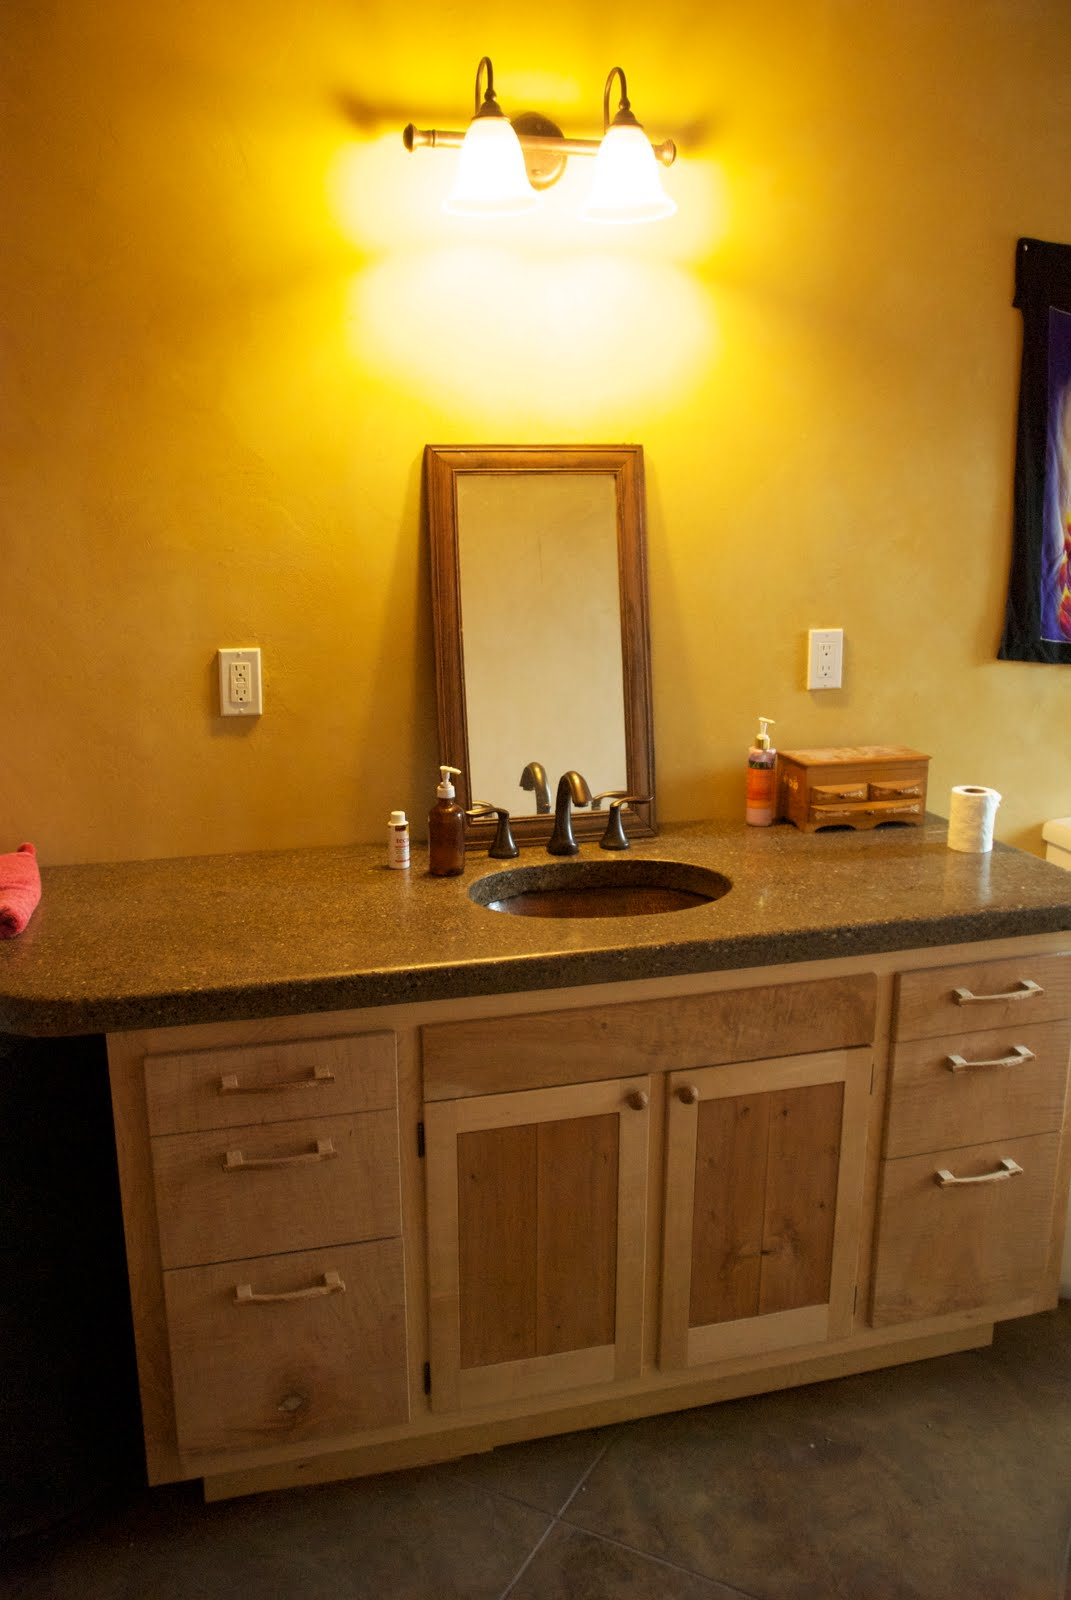 Countertop Linen Cabinet : California Homesteading: Master Bathroom Cabinet with Countertop